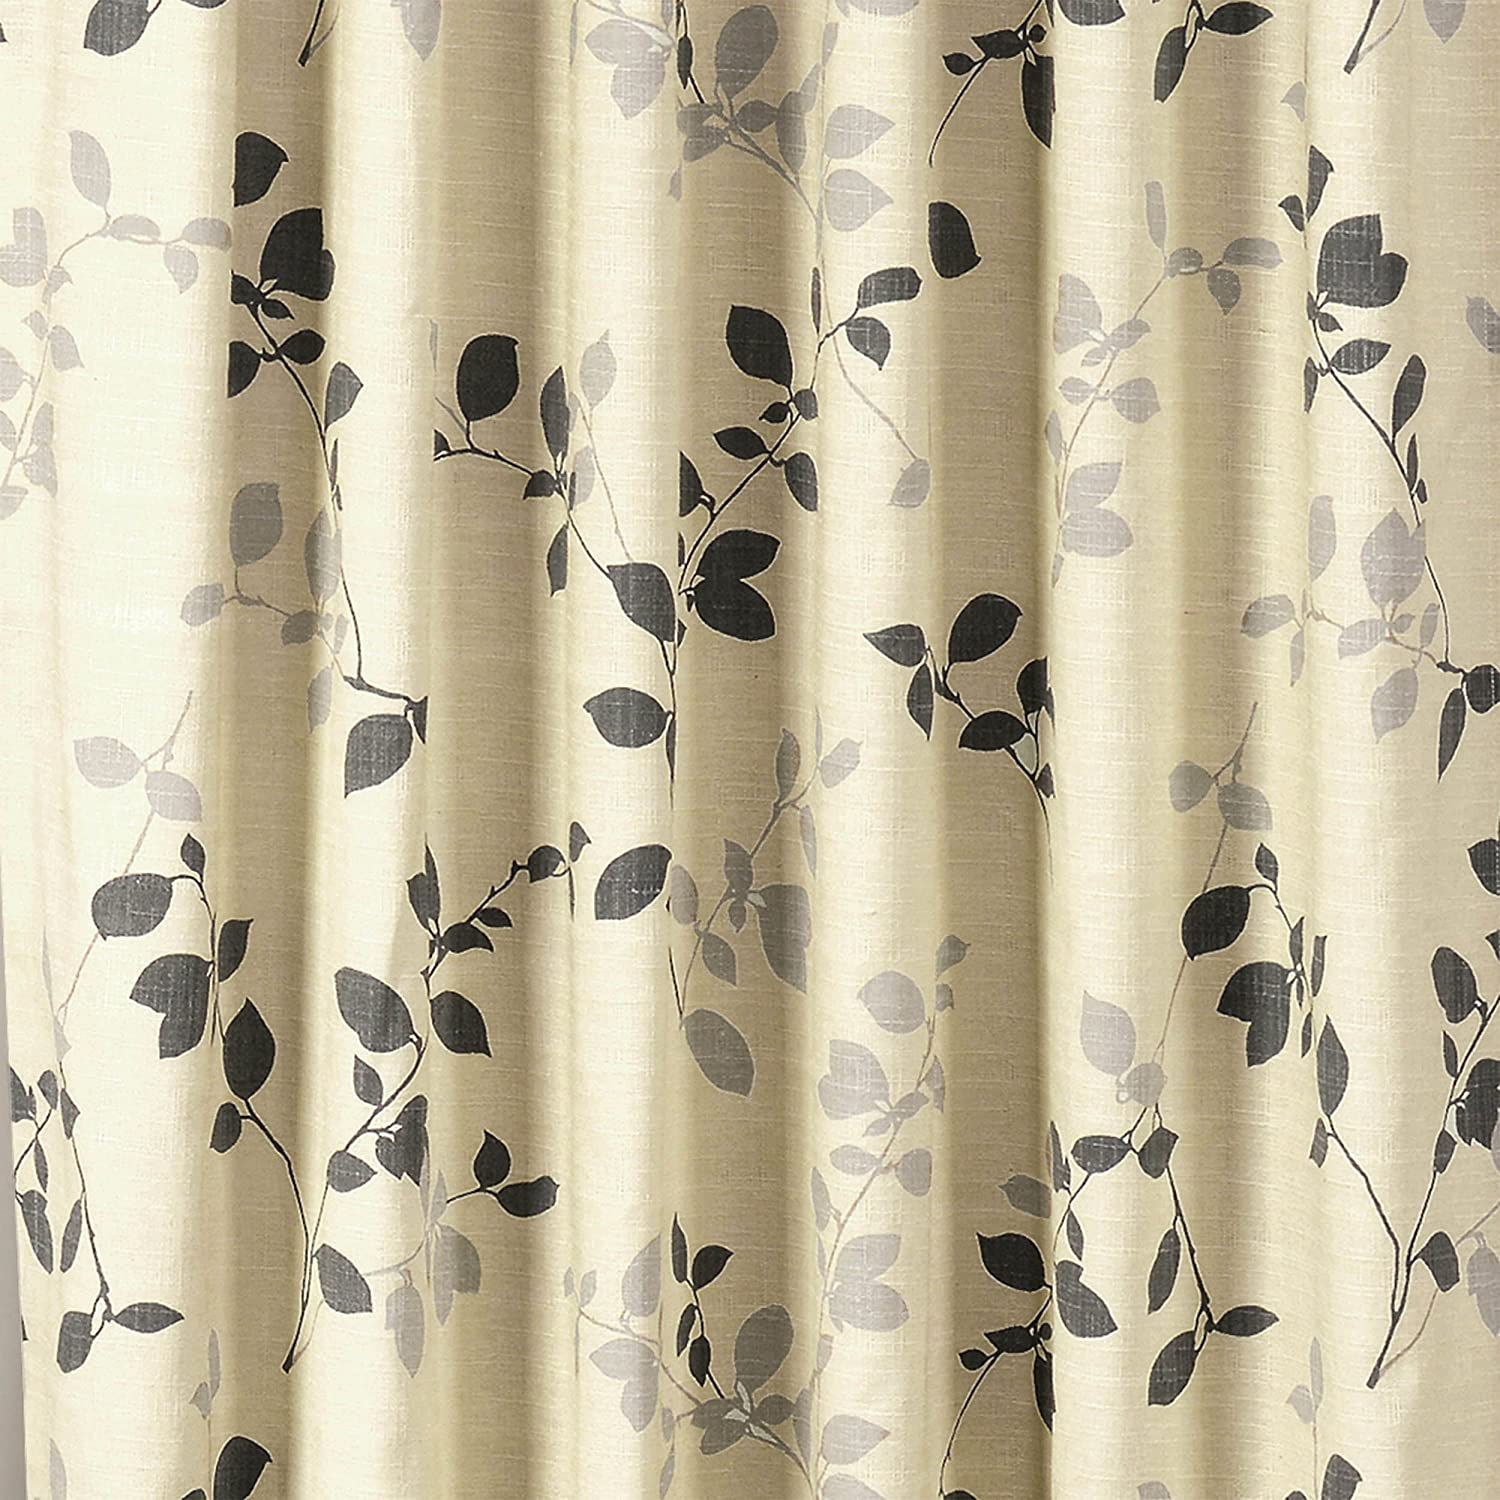 Window Elements Meridian Printed Cotton Blend Rod Pocket and Back Tabs 104 x 84 Curtain Panel Pair, Charcoal